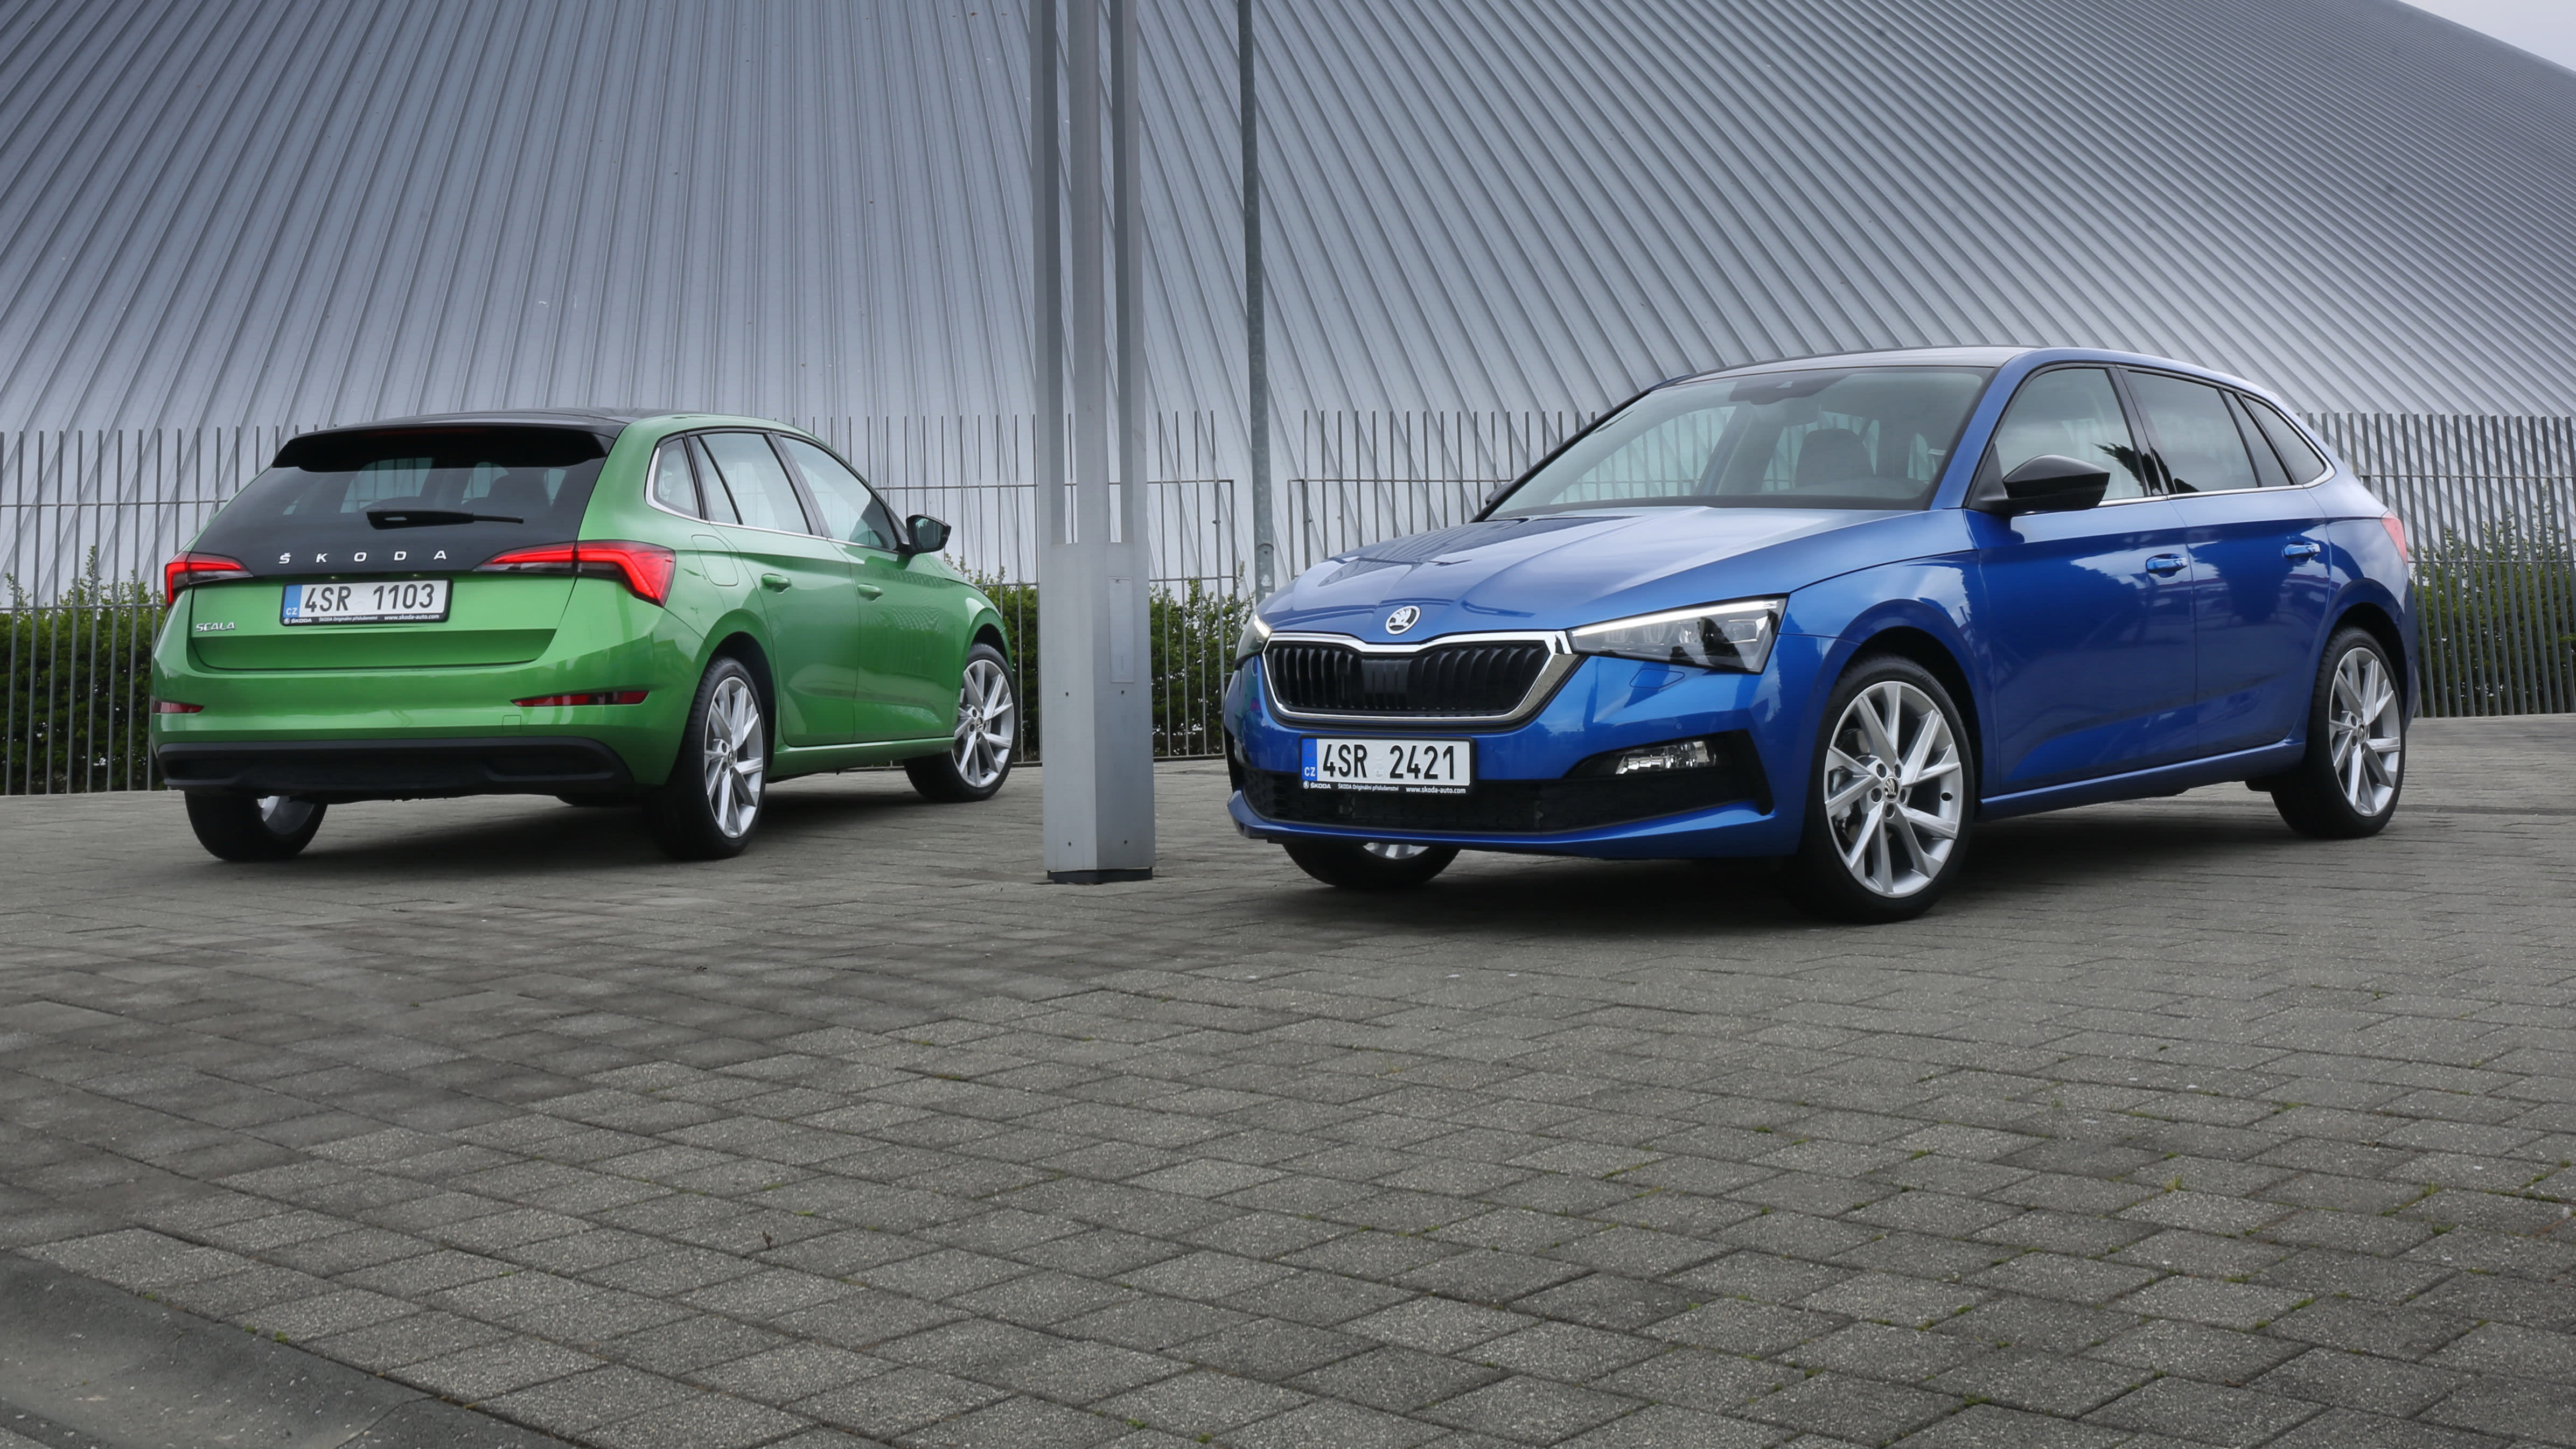 2020 Skoda Scala Price And Specs 26 990 Drive Away For New Hatch Caradvice